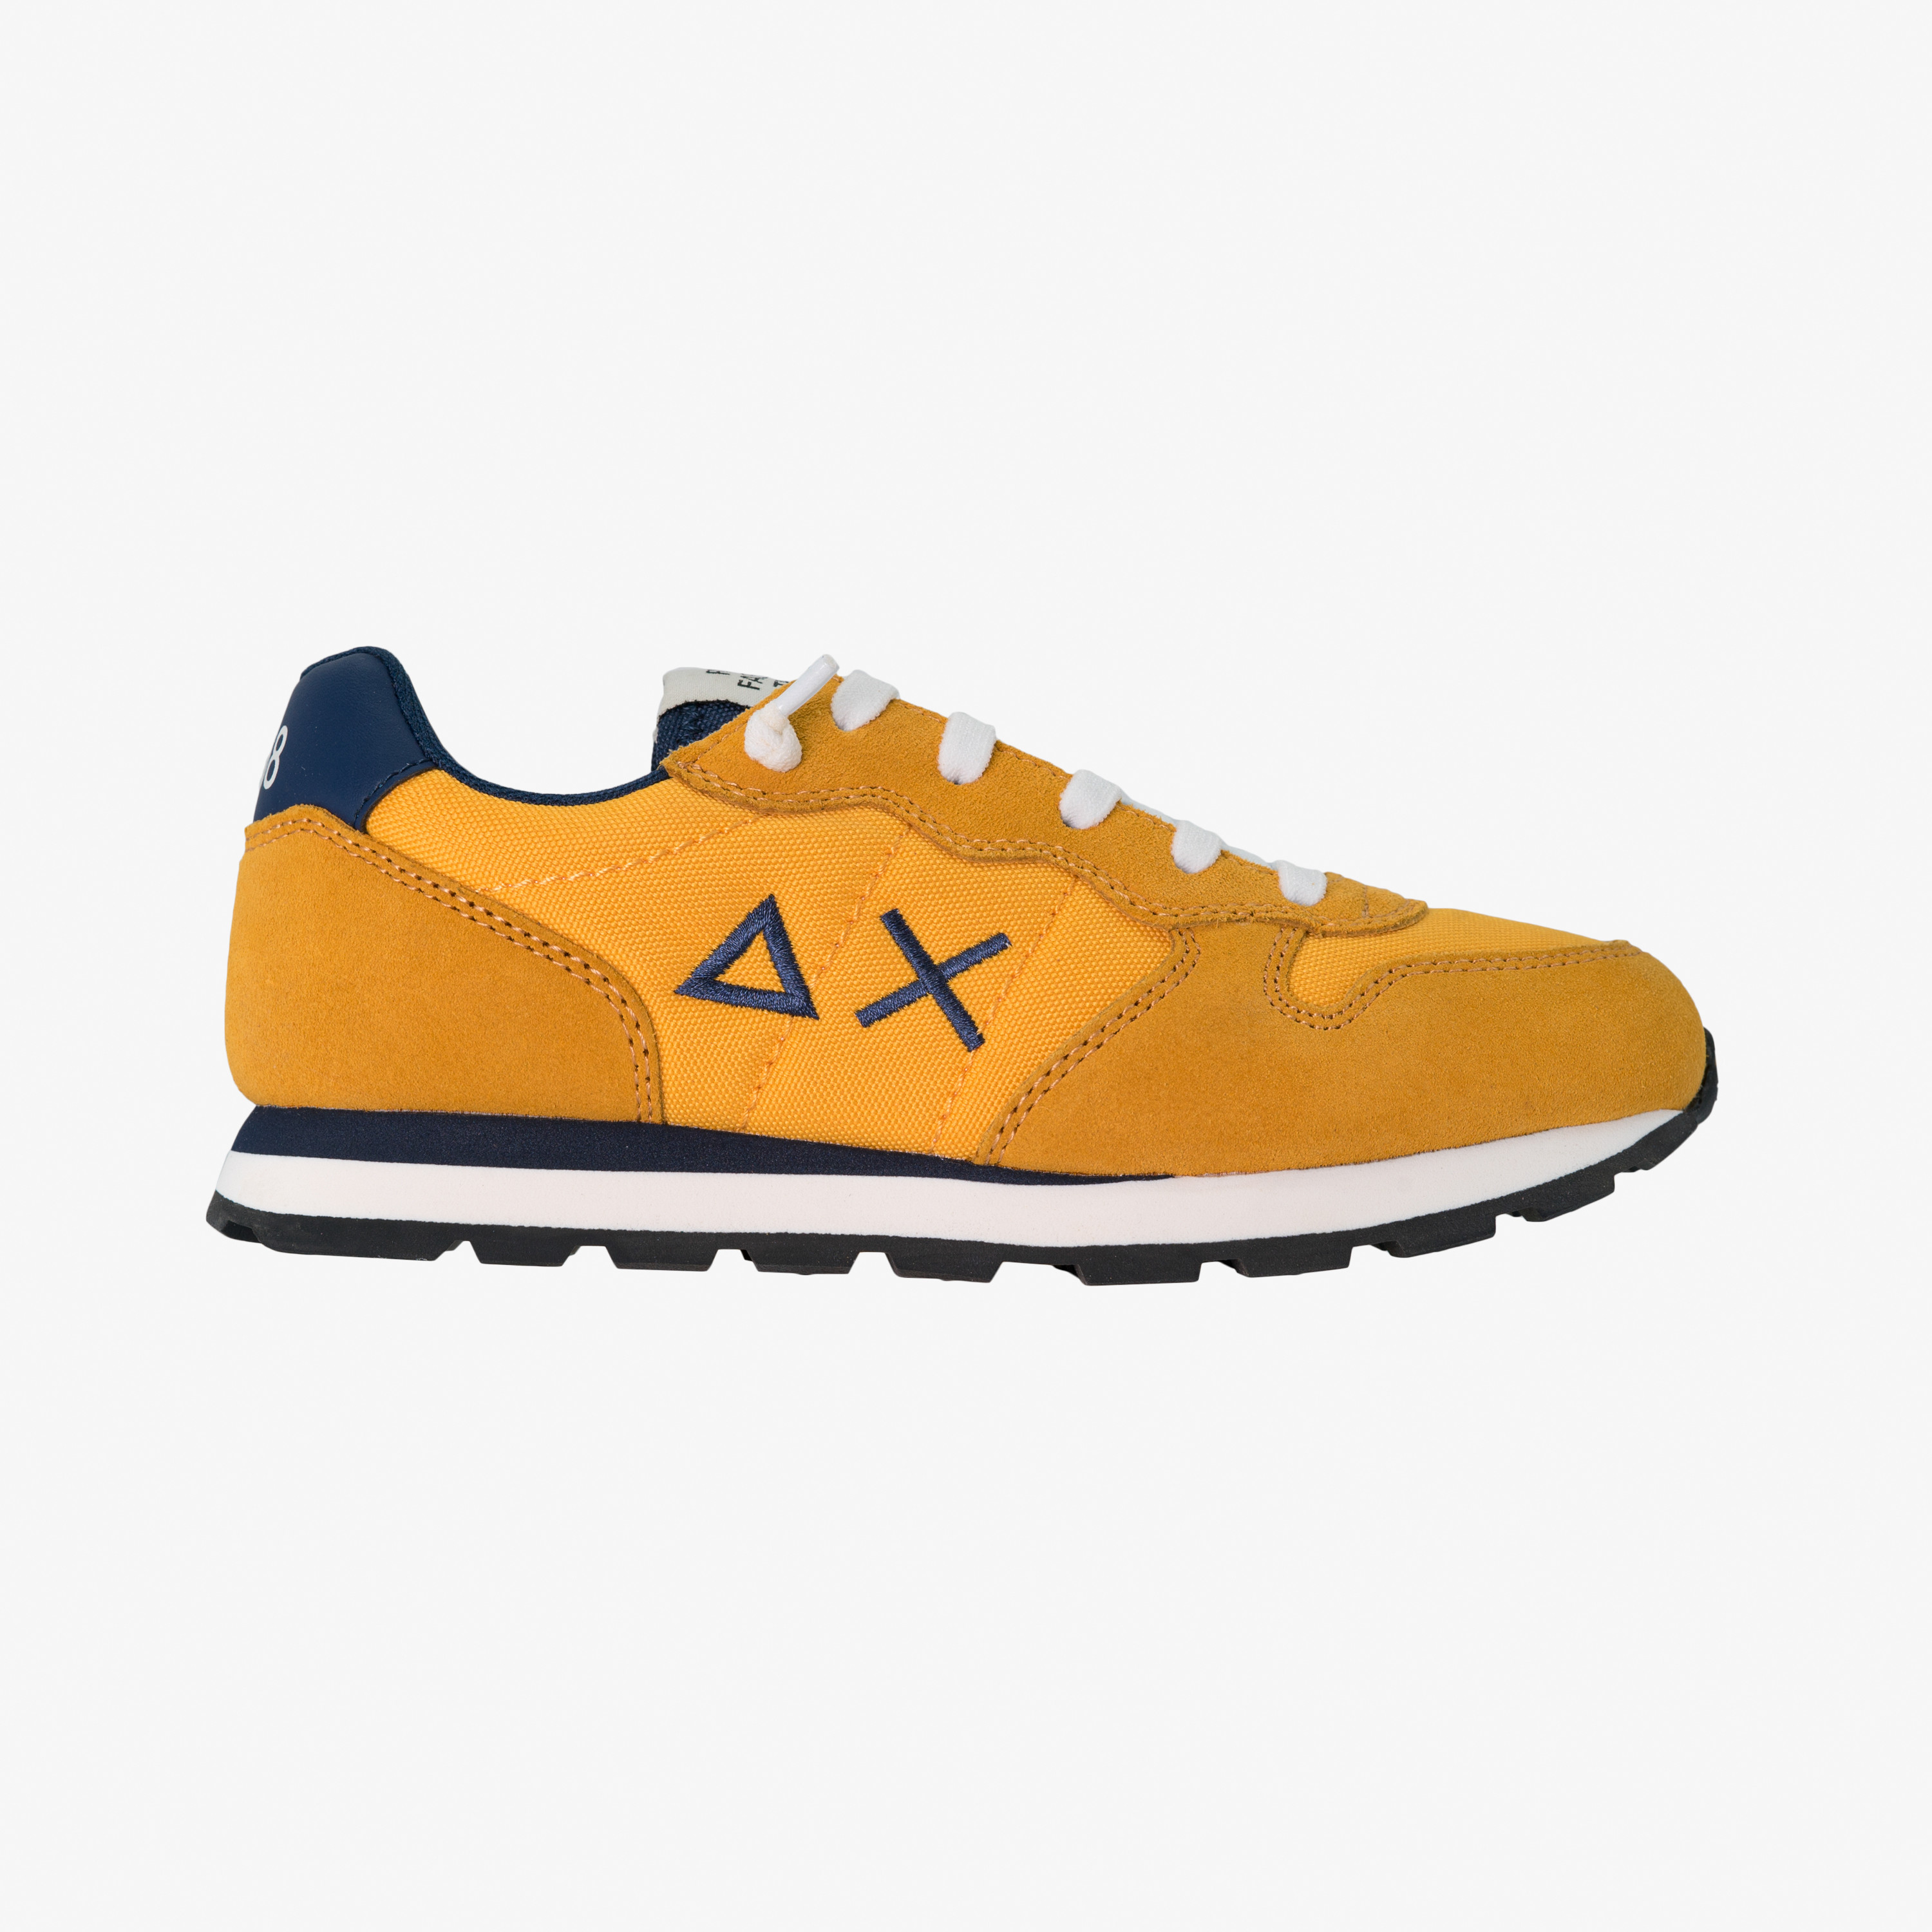 BOY'S TOM SOLID NYLON YELLOW/NAVY BLUE